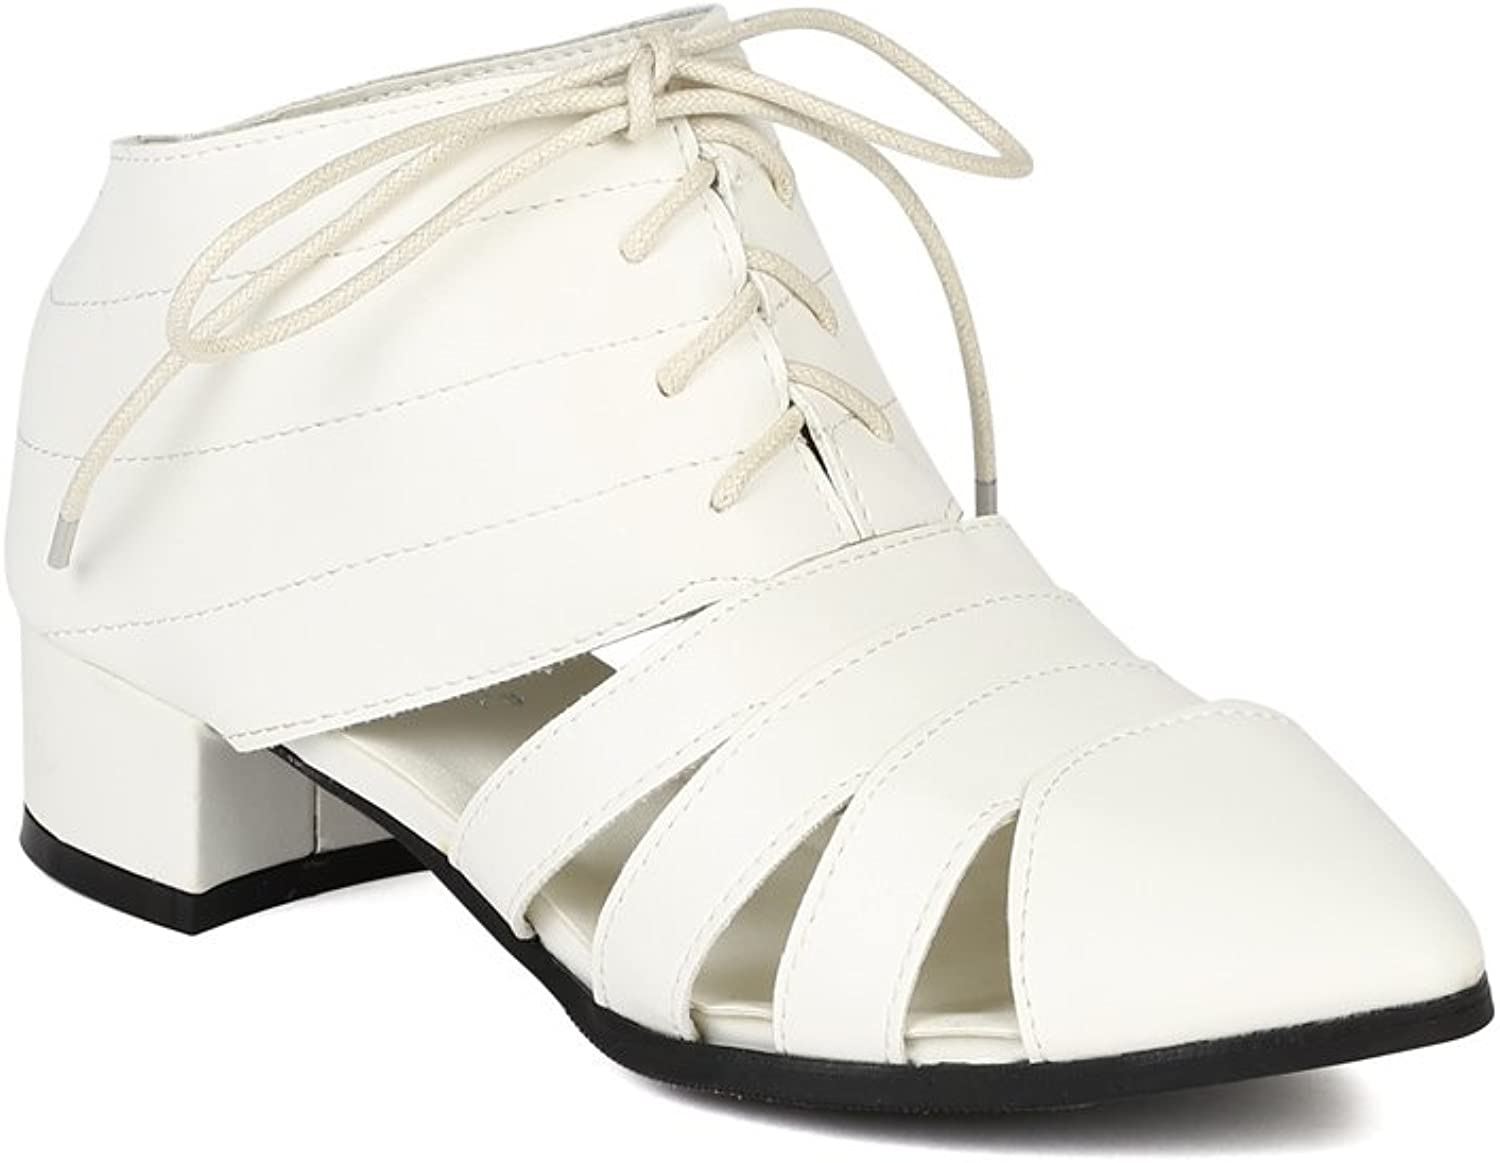 Women Leatherette Cut Out Lace up Pointy Toe Bootie BJ21 - White